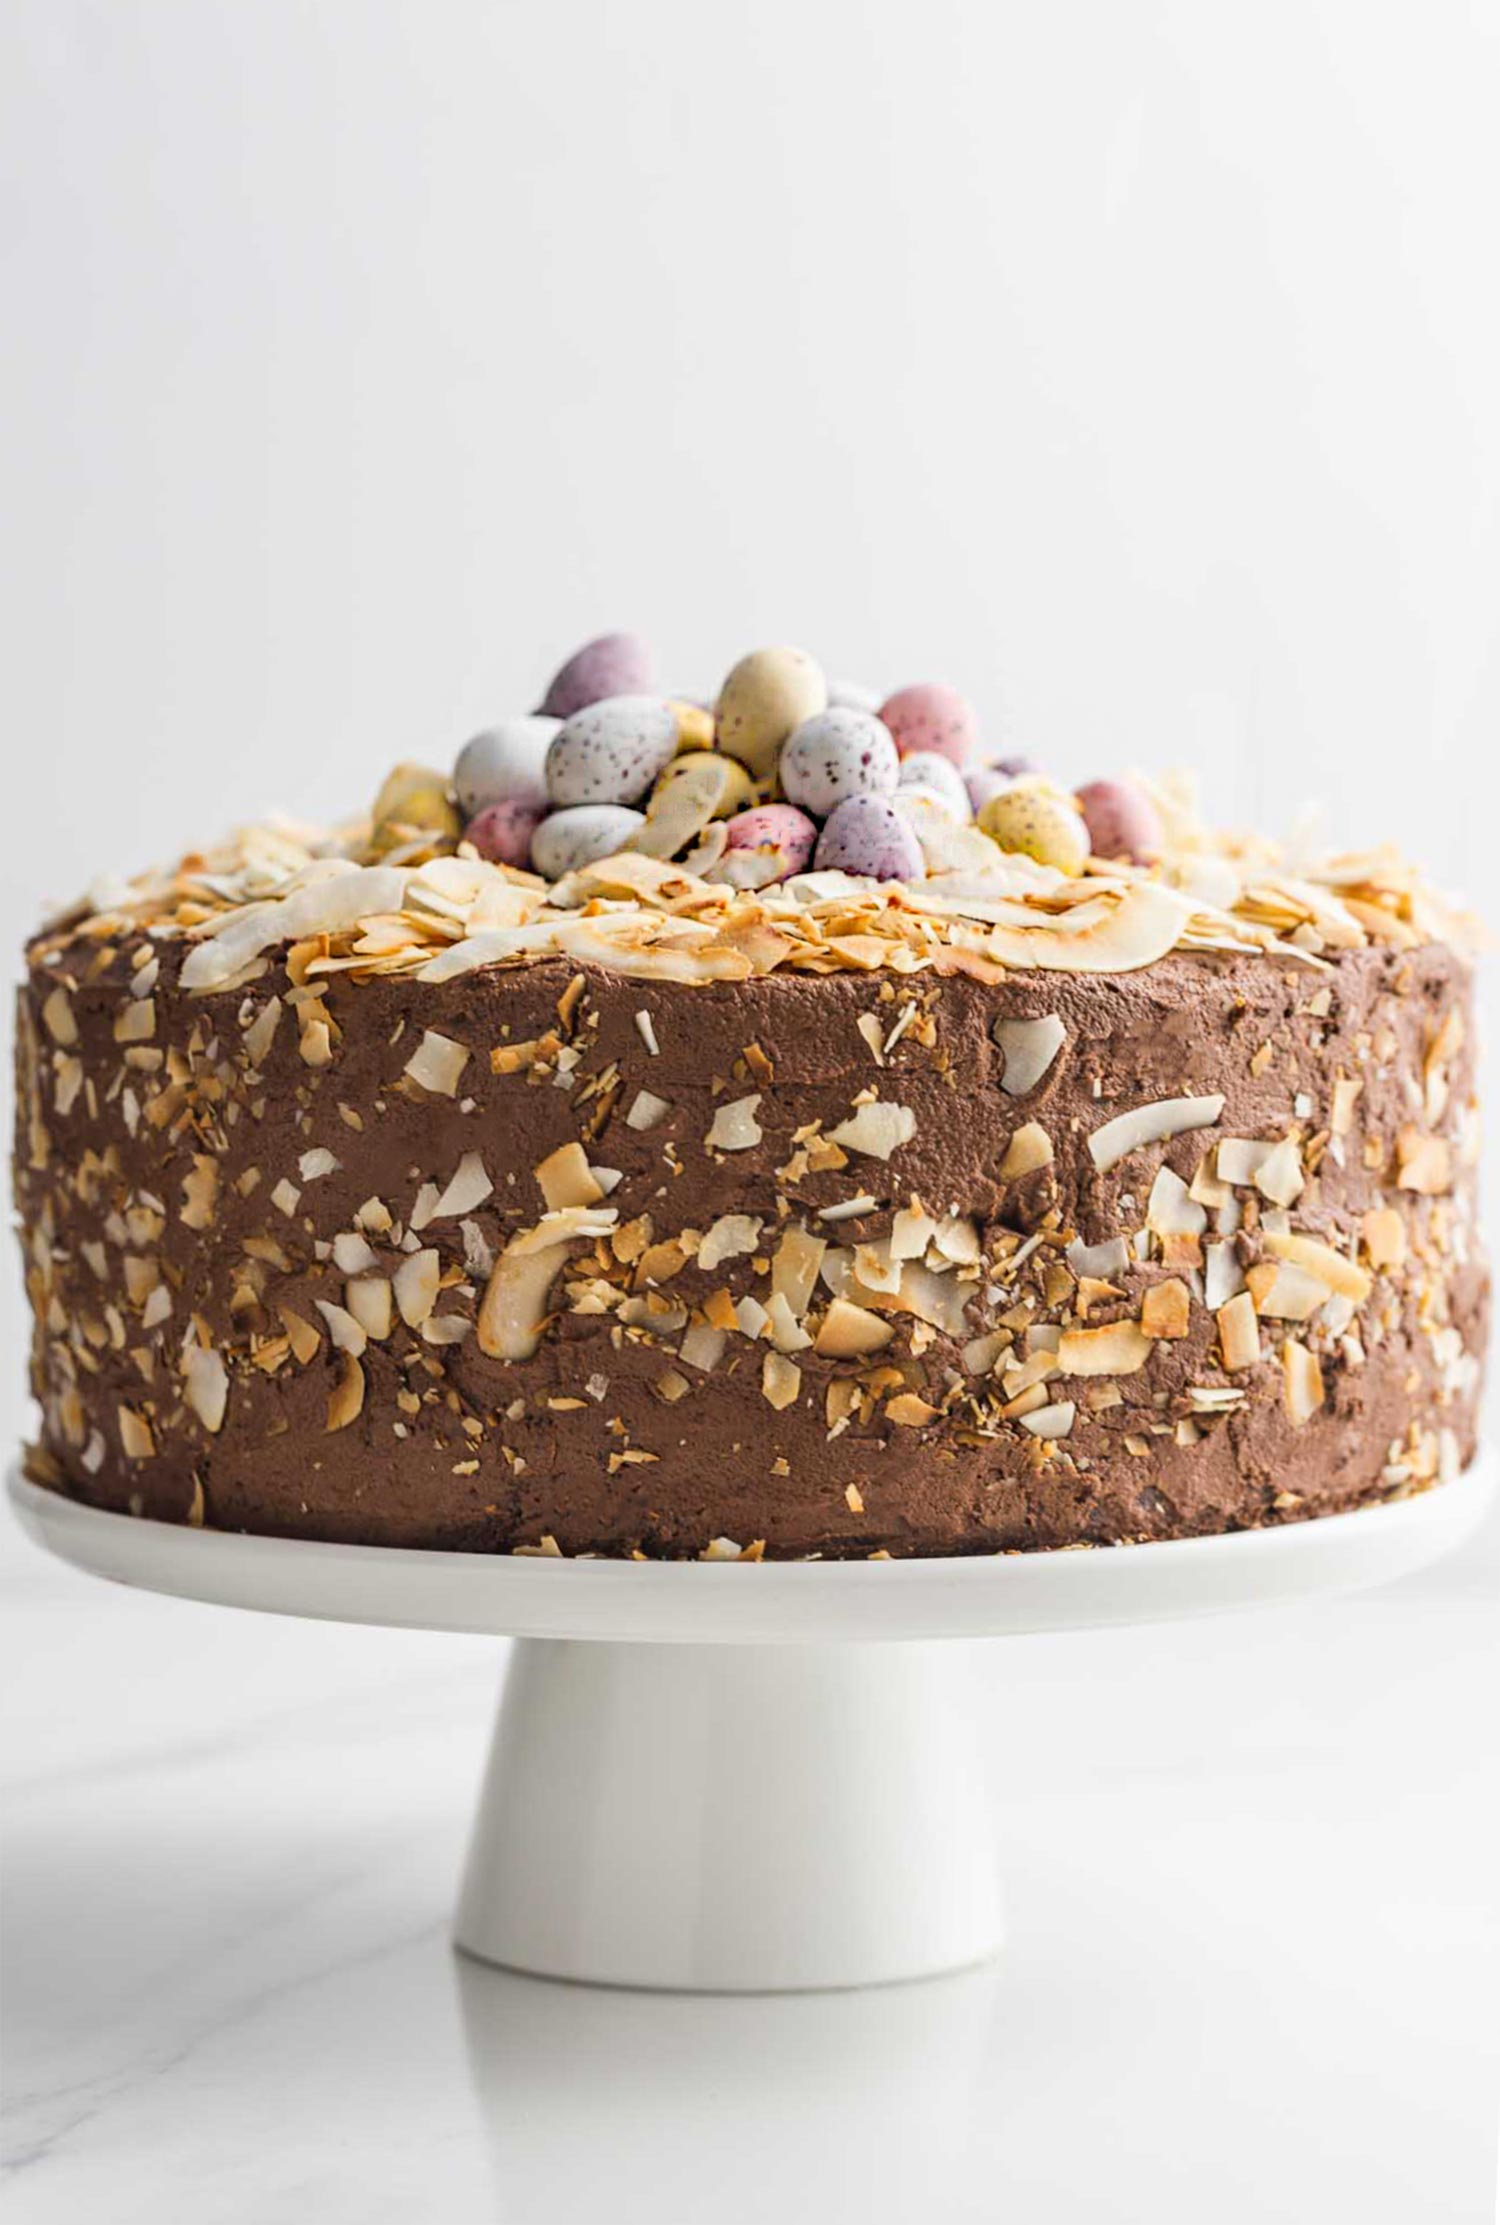 Chocolate Easter cake on a cake stand